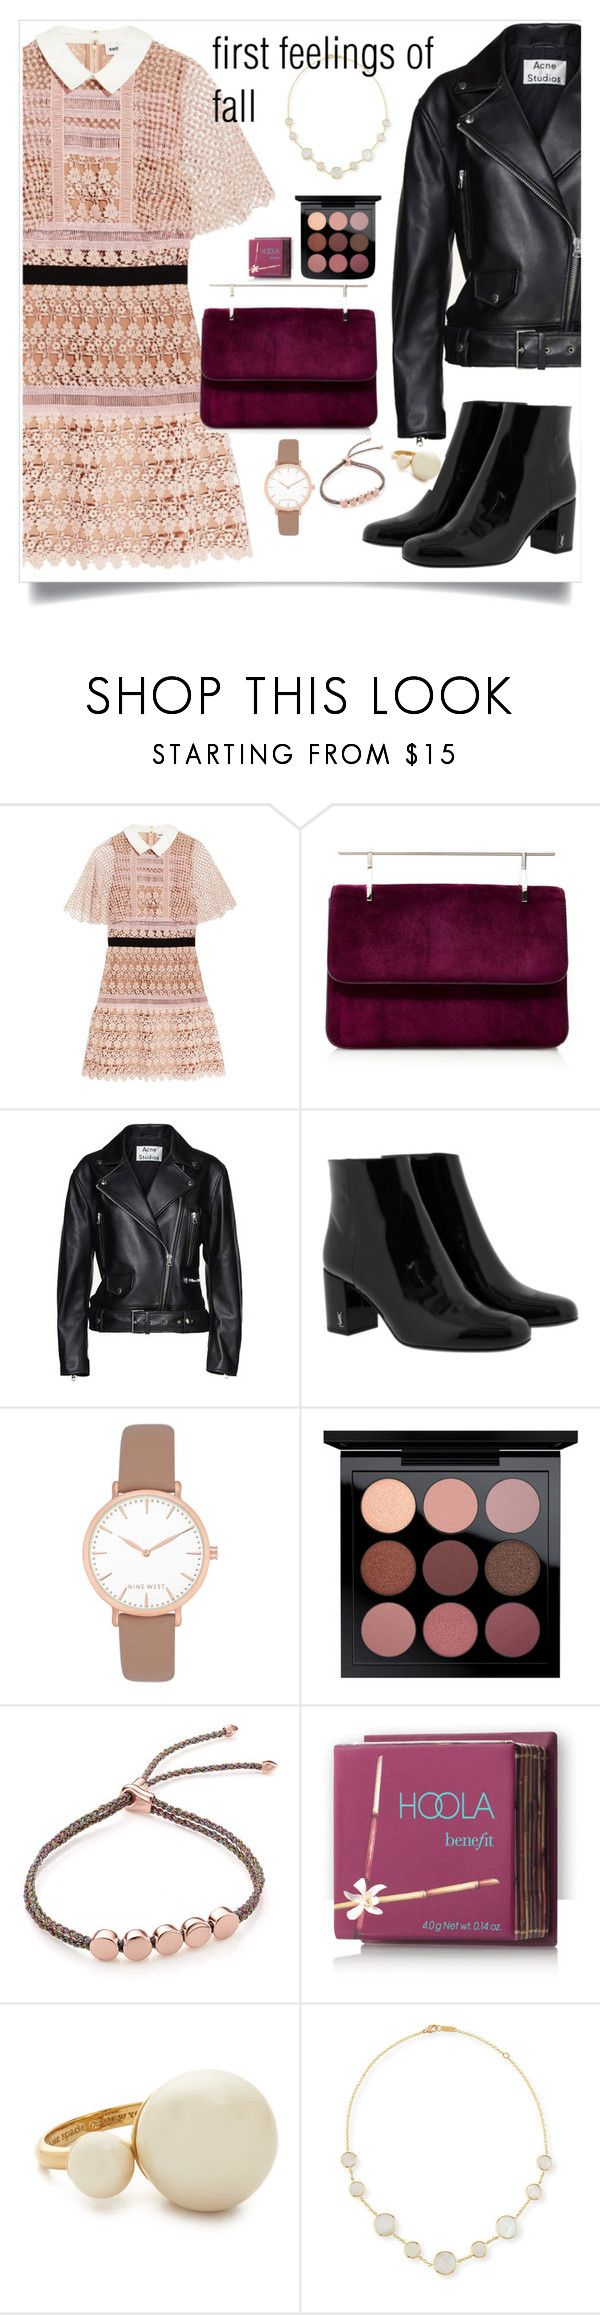 """Fall Feelings"" by maggiesinthemoon ❤ liked on Polyvore featuring self-portrait, Fleur du Mal, Acne Studios, Yves Saint Laurent, Nine West, Monica Vinader, Hoola, Kate Spade and Ippolita"